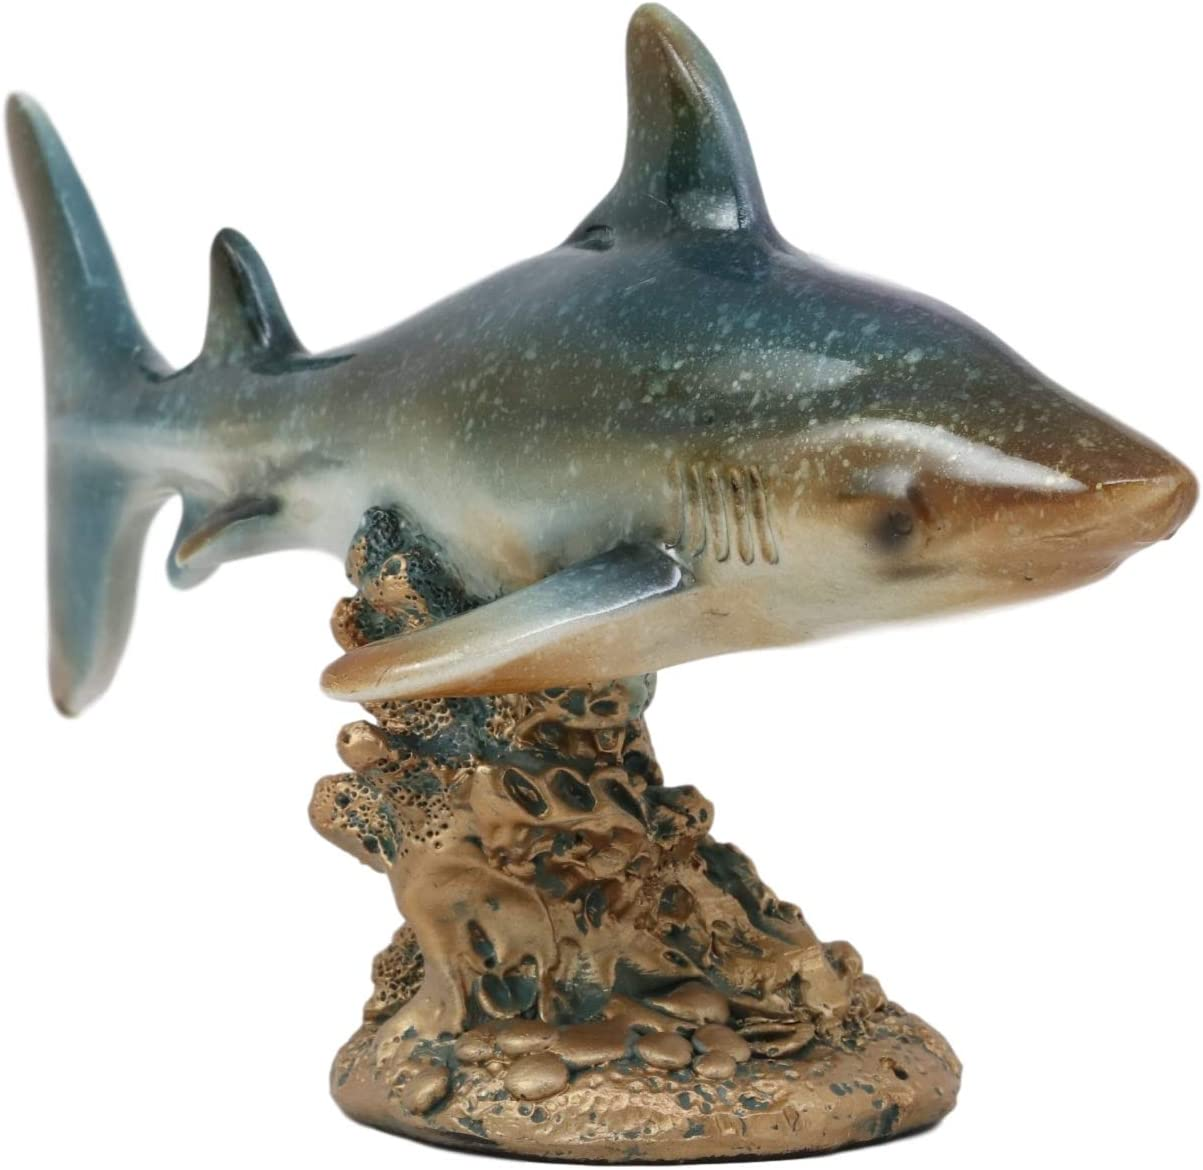 "Ebros Gift 7"" Long Ocean Marine Beach Coastal Predator Great White Shark Swimming Over Coral Reefs Statue Deep Blue Sea Apex Hunter Sharks Fish Figurine Home Decor"